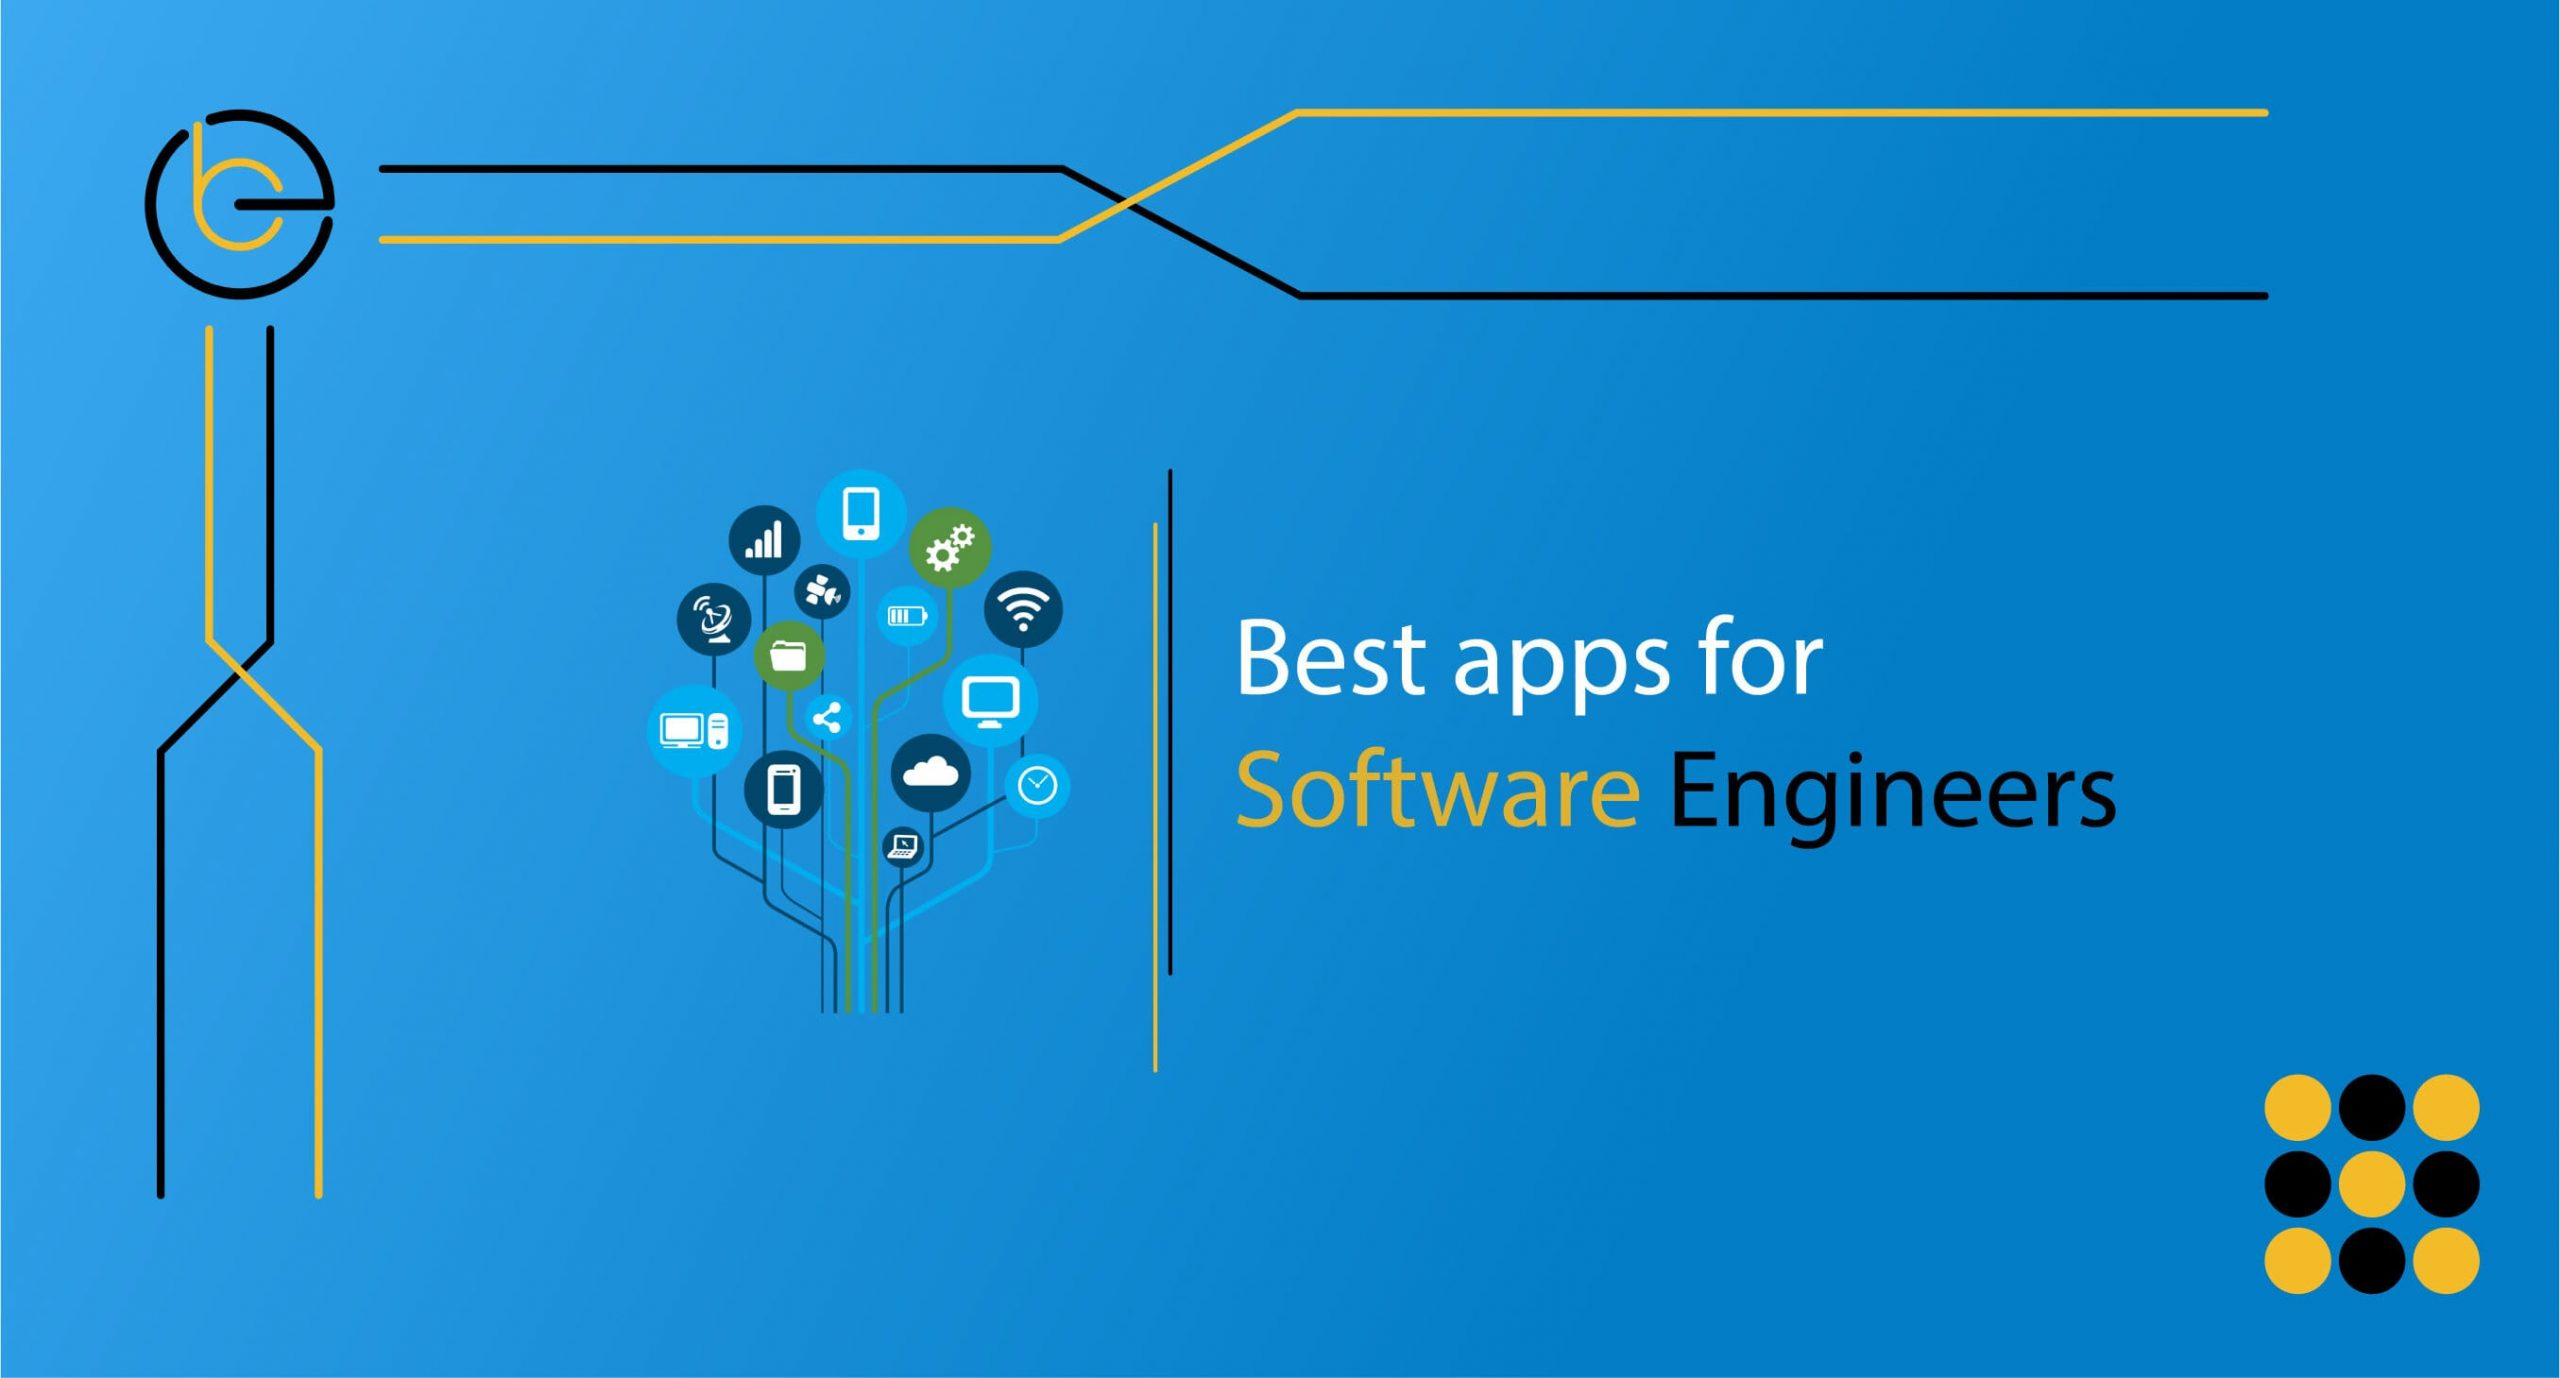 Best apps for software engineers